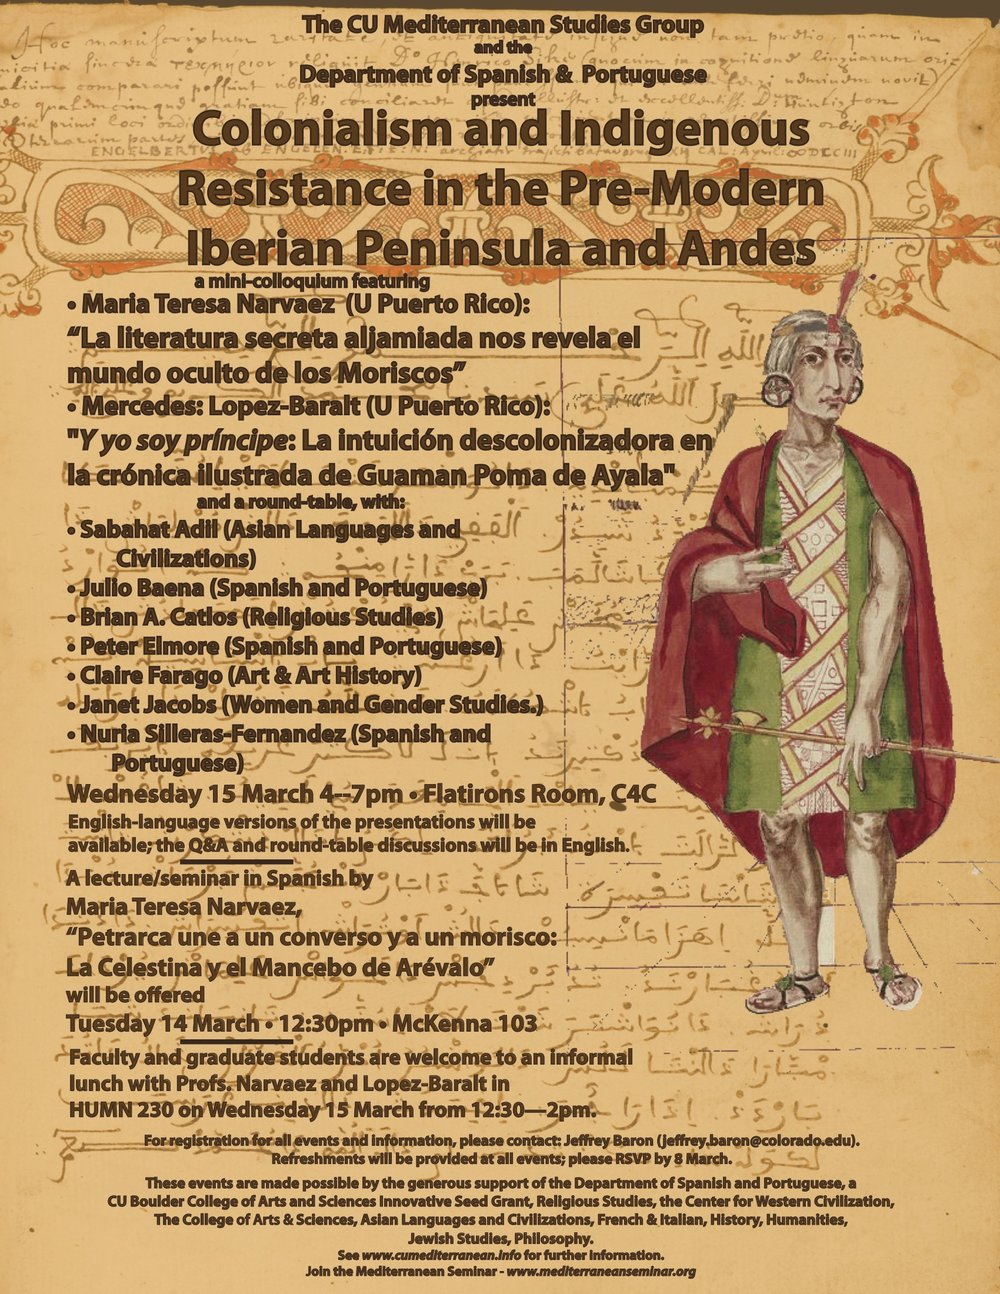 170315 Colonialism and Indigenous Resistance.jpg